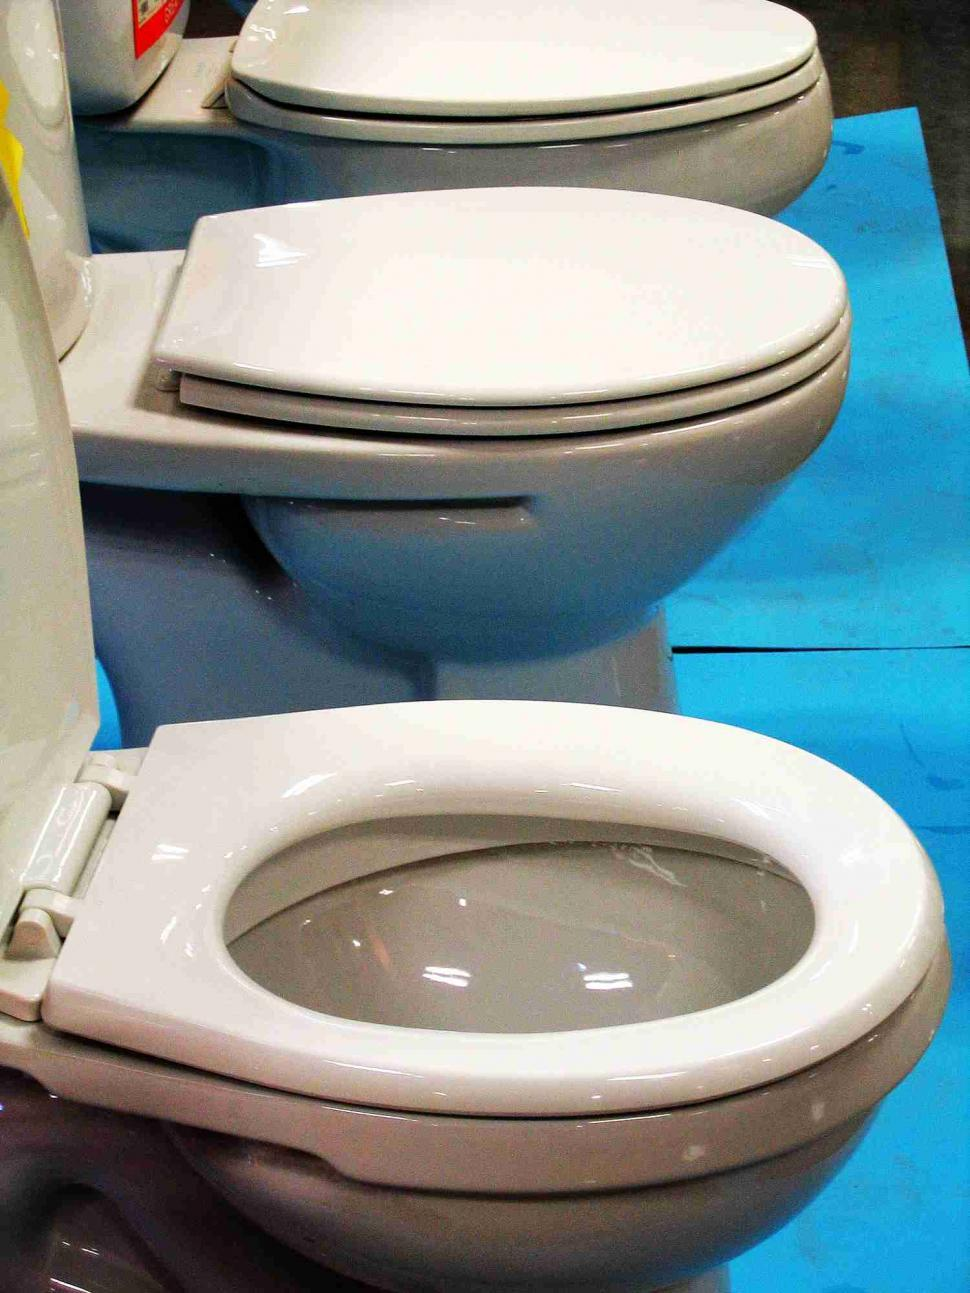 Download Free Stock Photo of Line of toilets